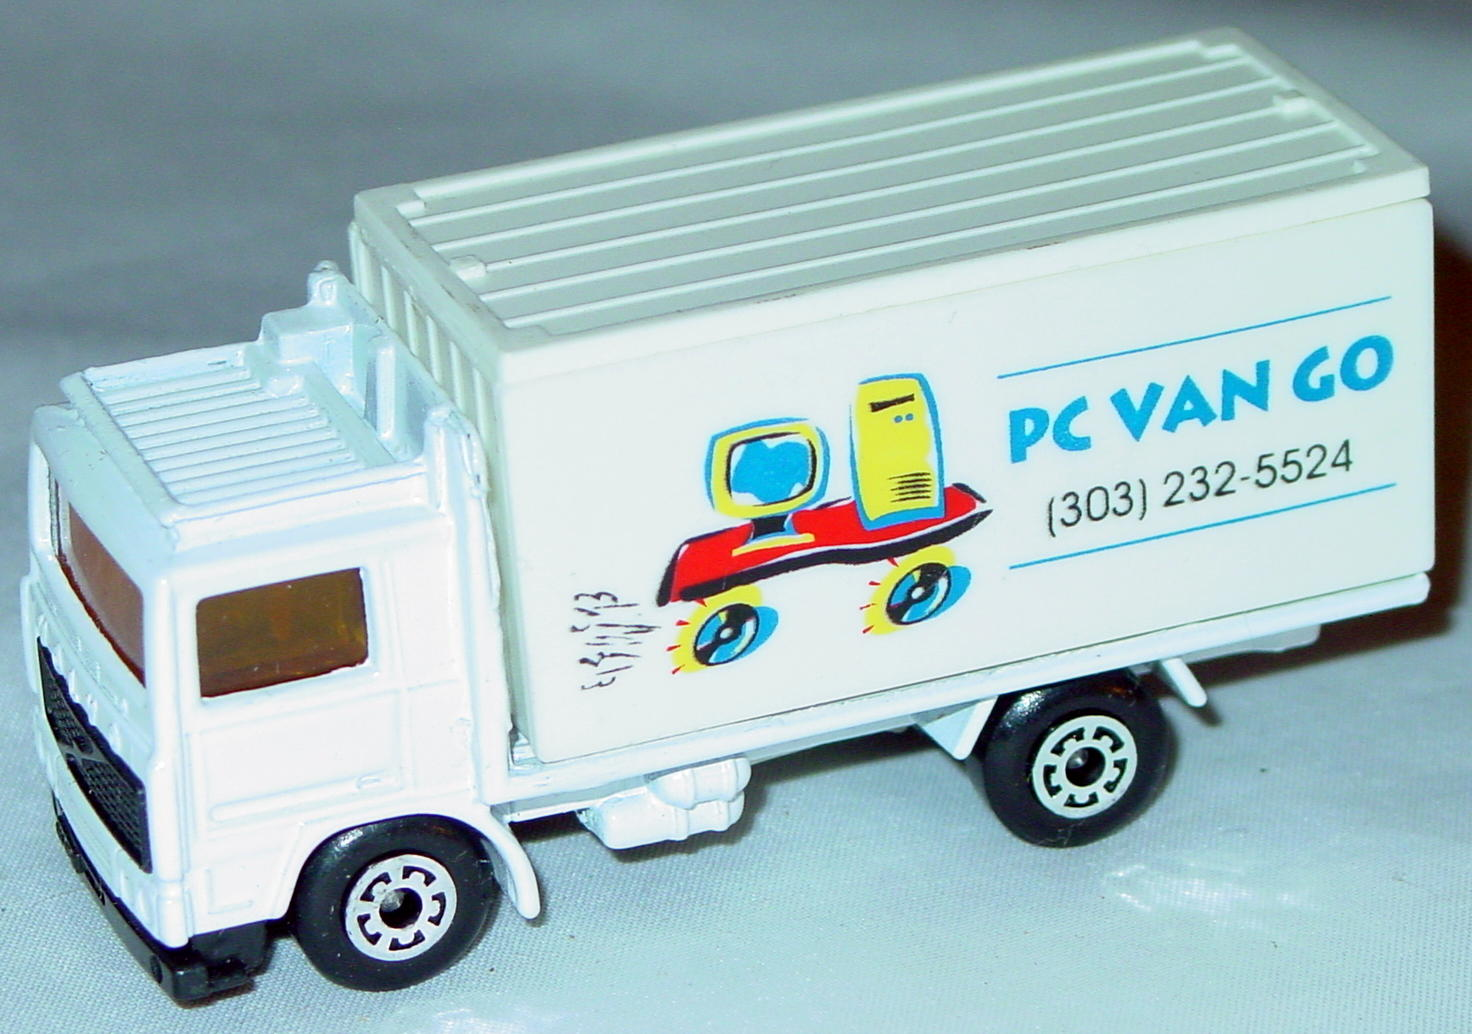 ASAP-CCI 20 D 42 - Volvo Cont Truck White and White  PC Van Go ASAP